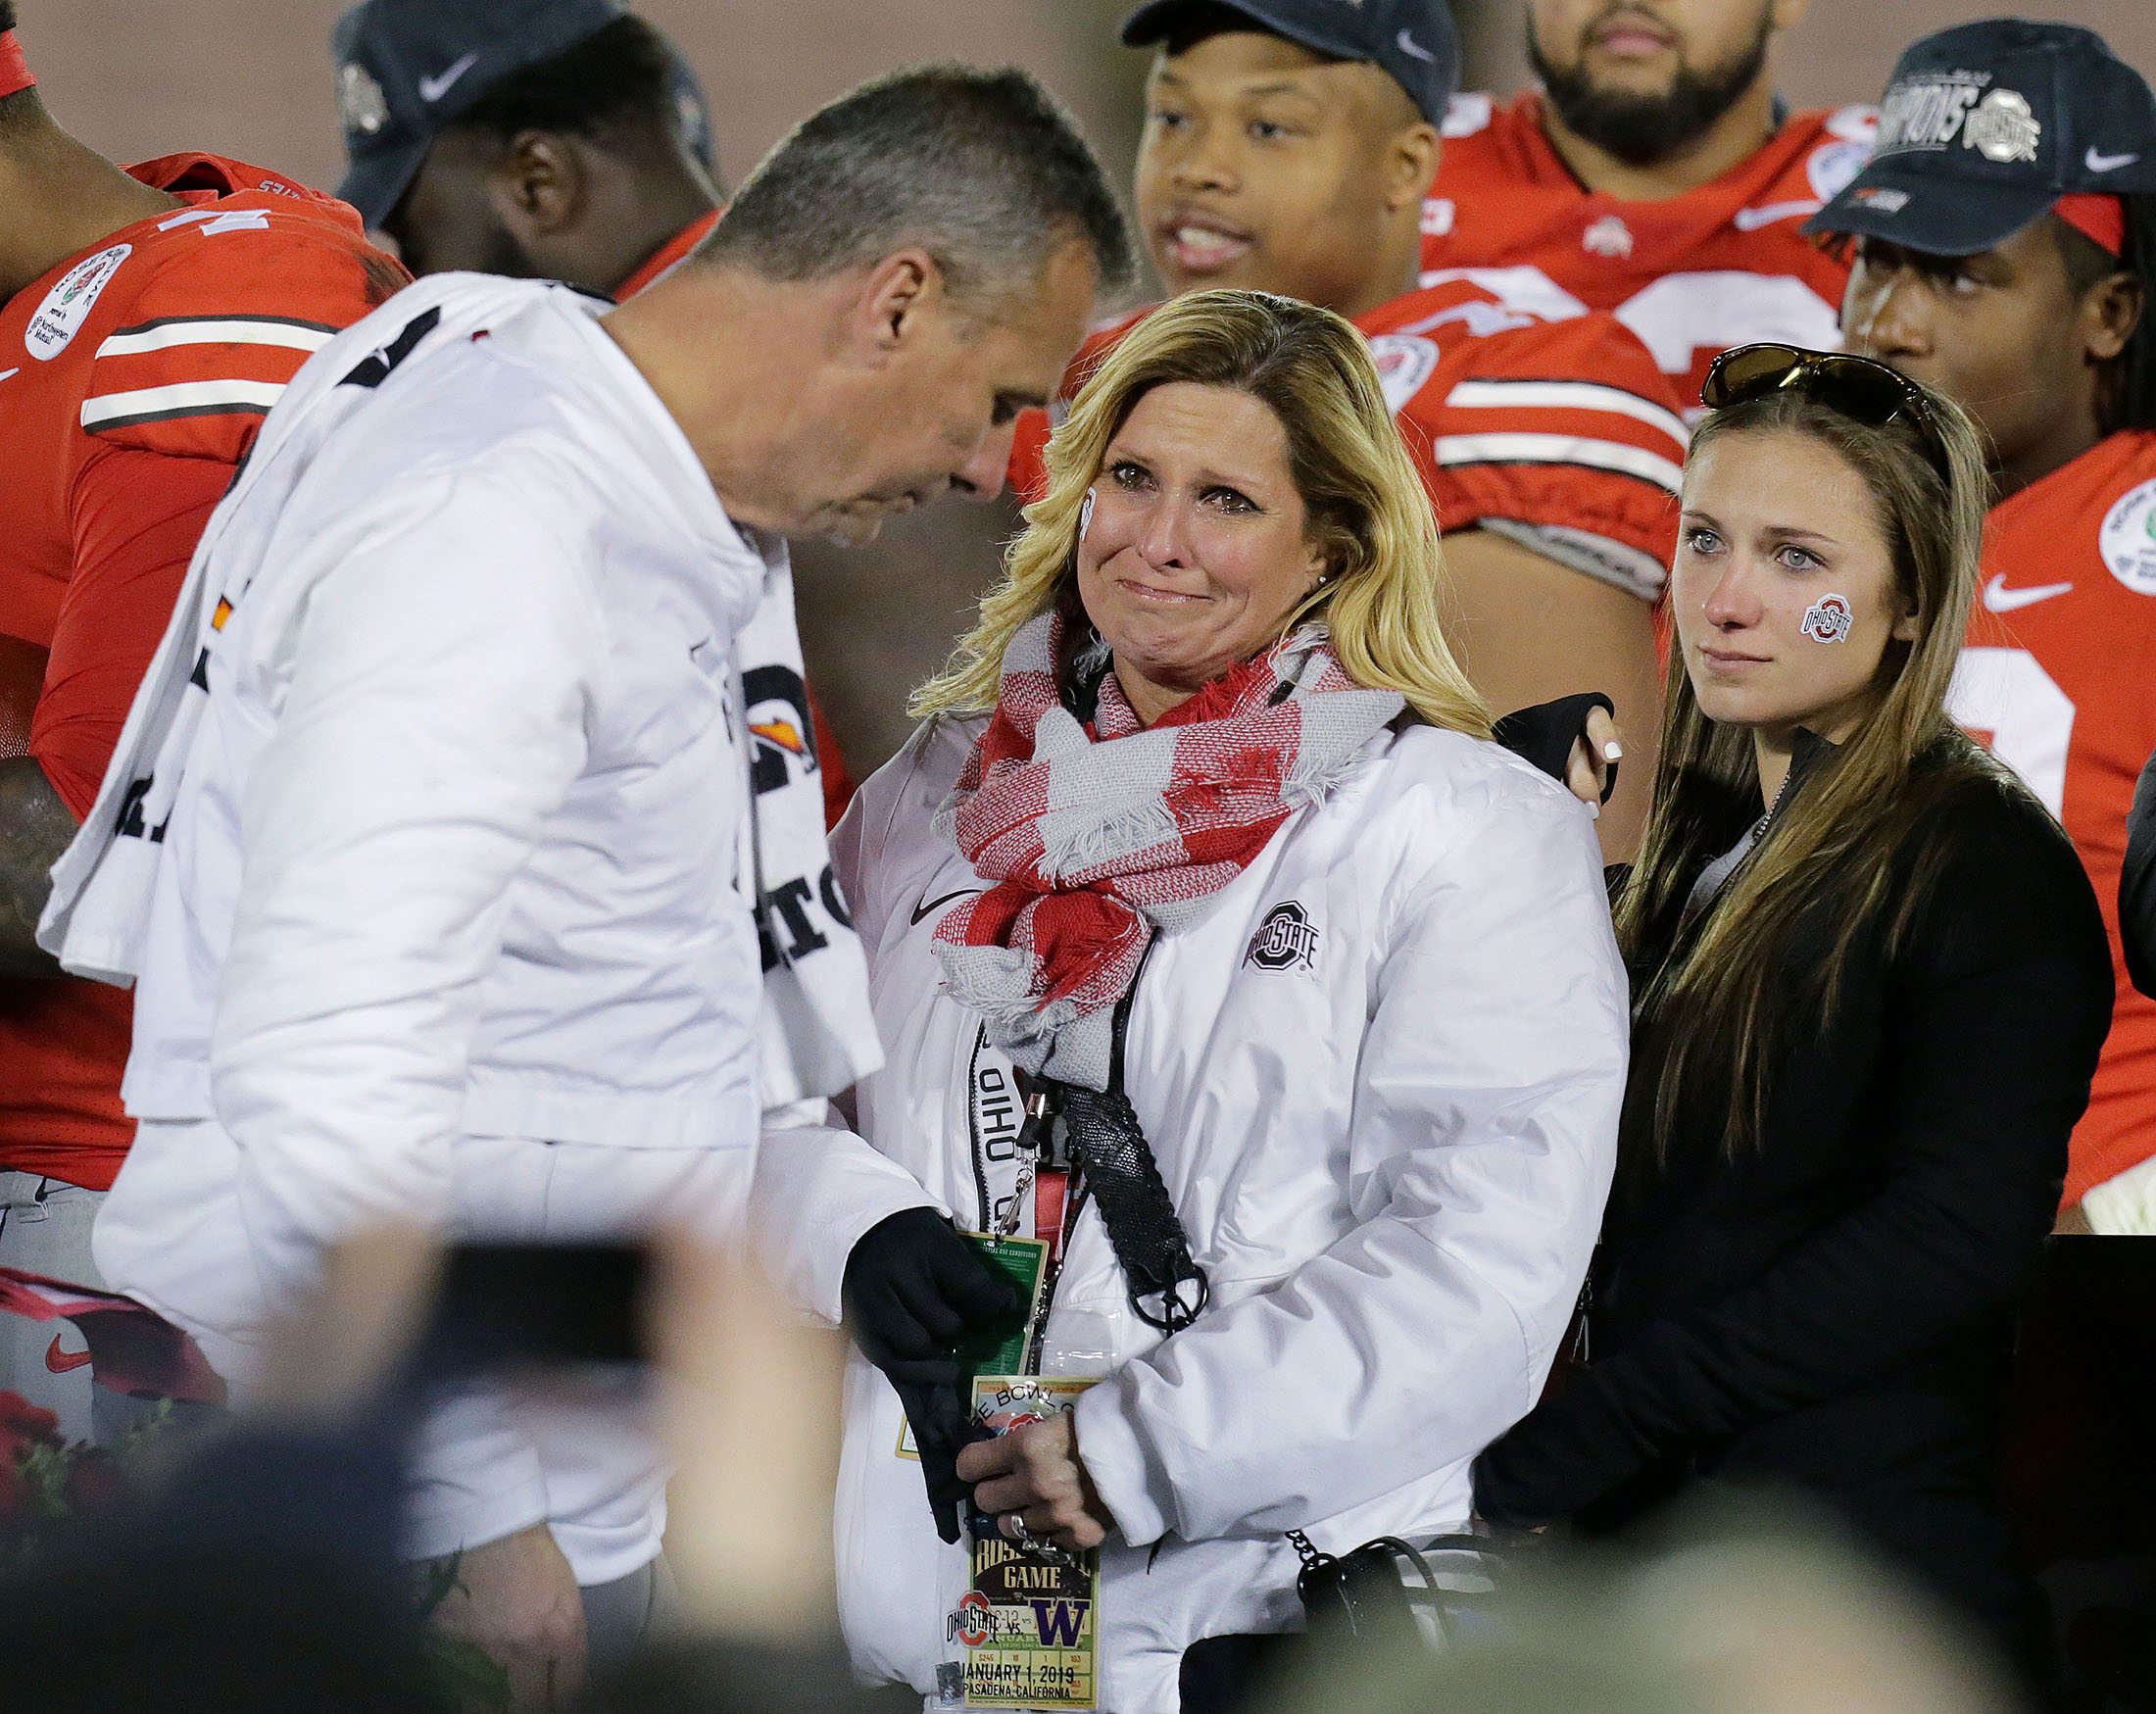 Ohio State Buckeyes head coach Urban Meyer lowers his head as he walks off stage after winning his last game as head coach at Ohio State while his wife, Shelley Mather Meyer and daughter cry as they watch him at the end of the 105th Rose Bowl game in Pasadena on Tuesday, January 1, 2019.